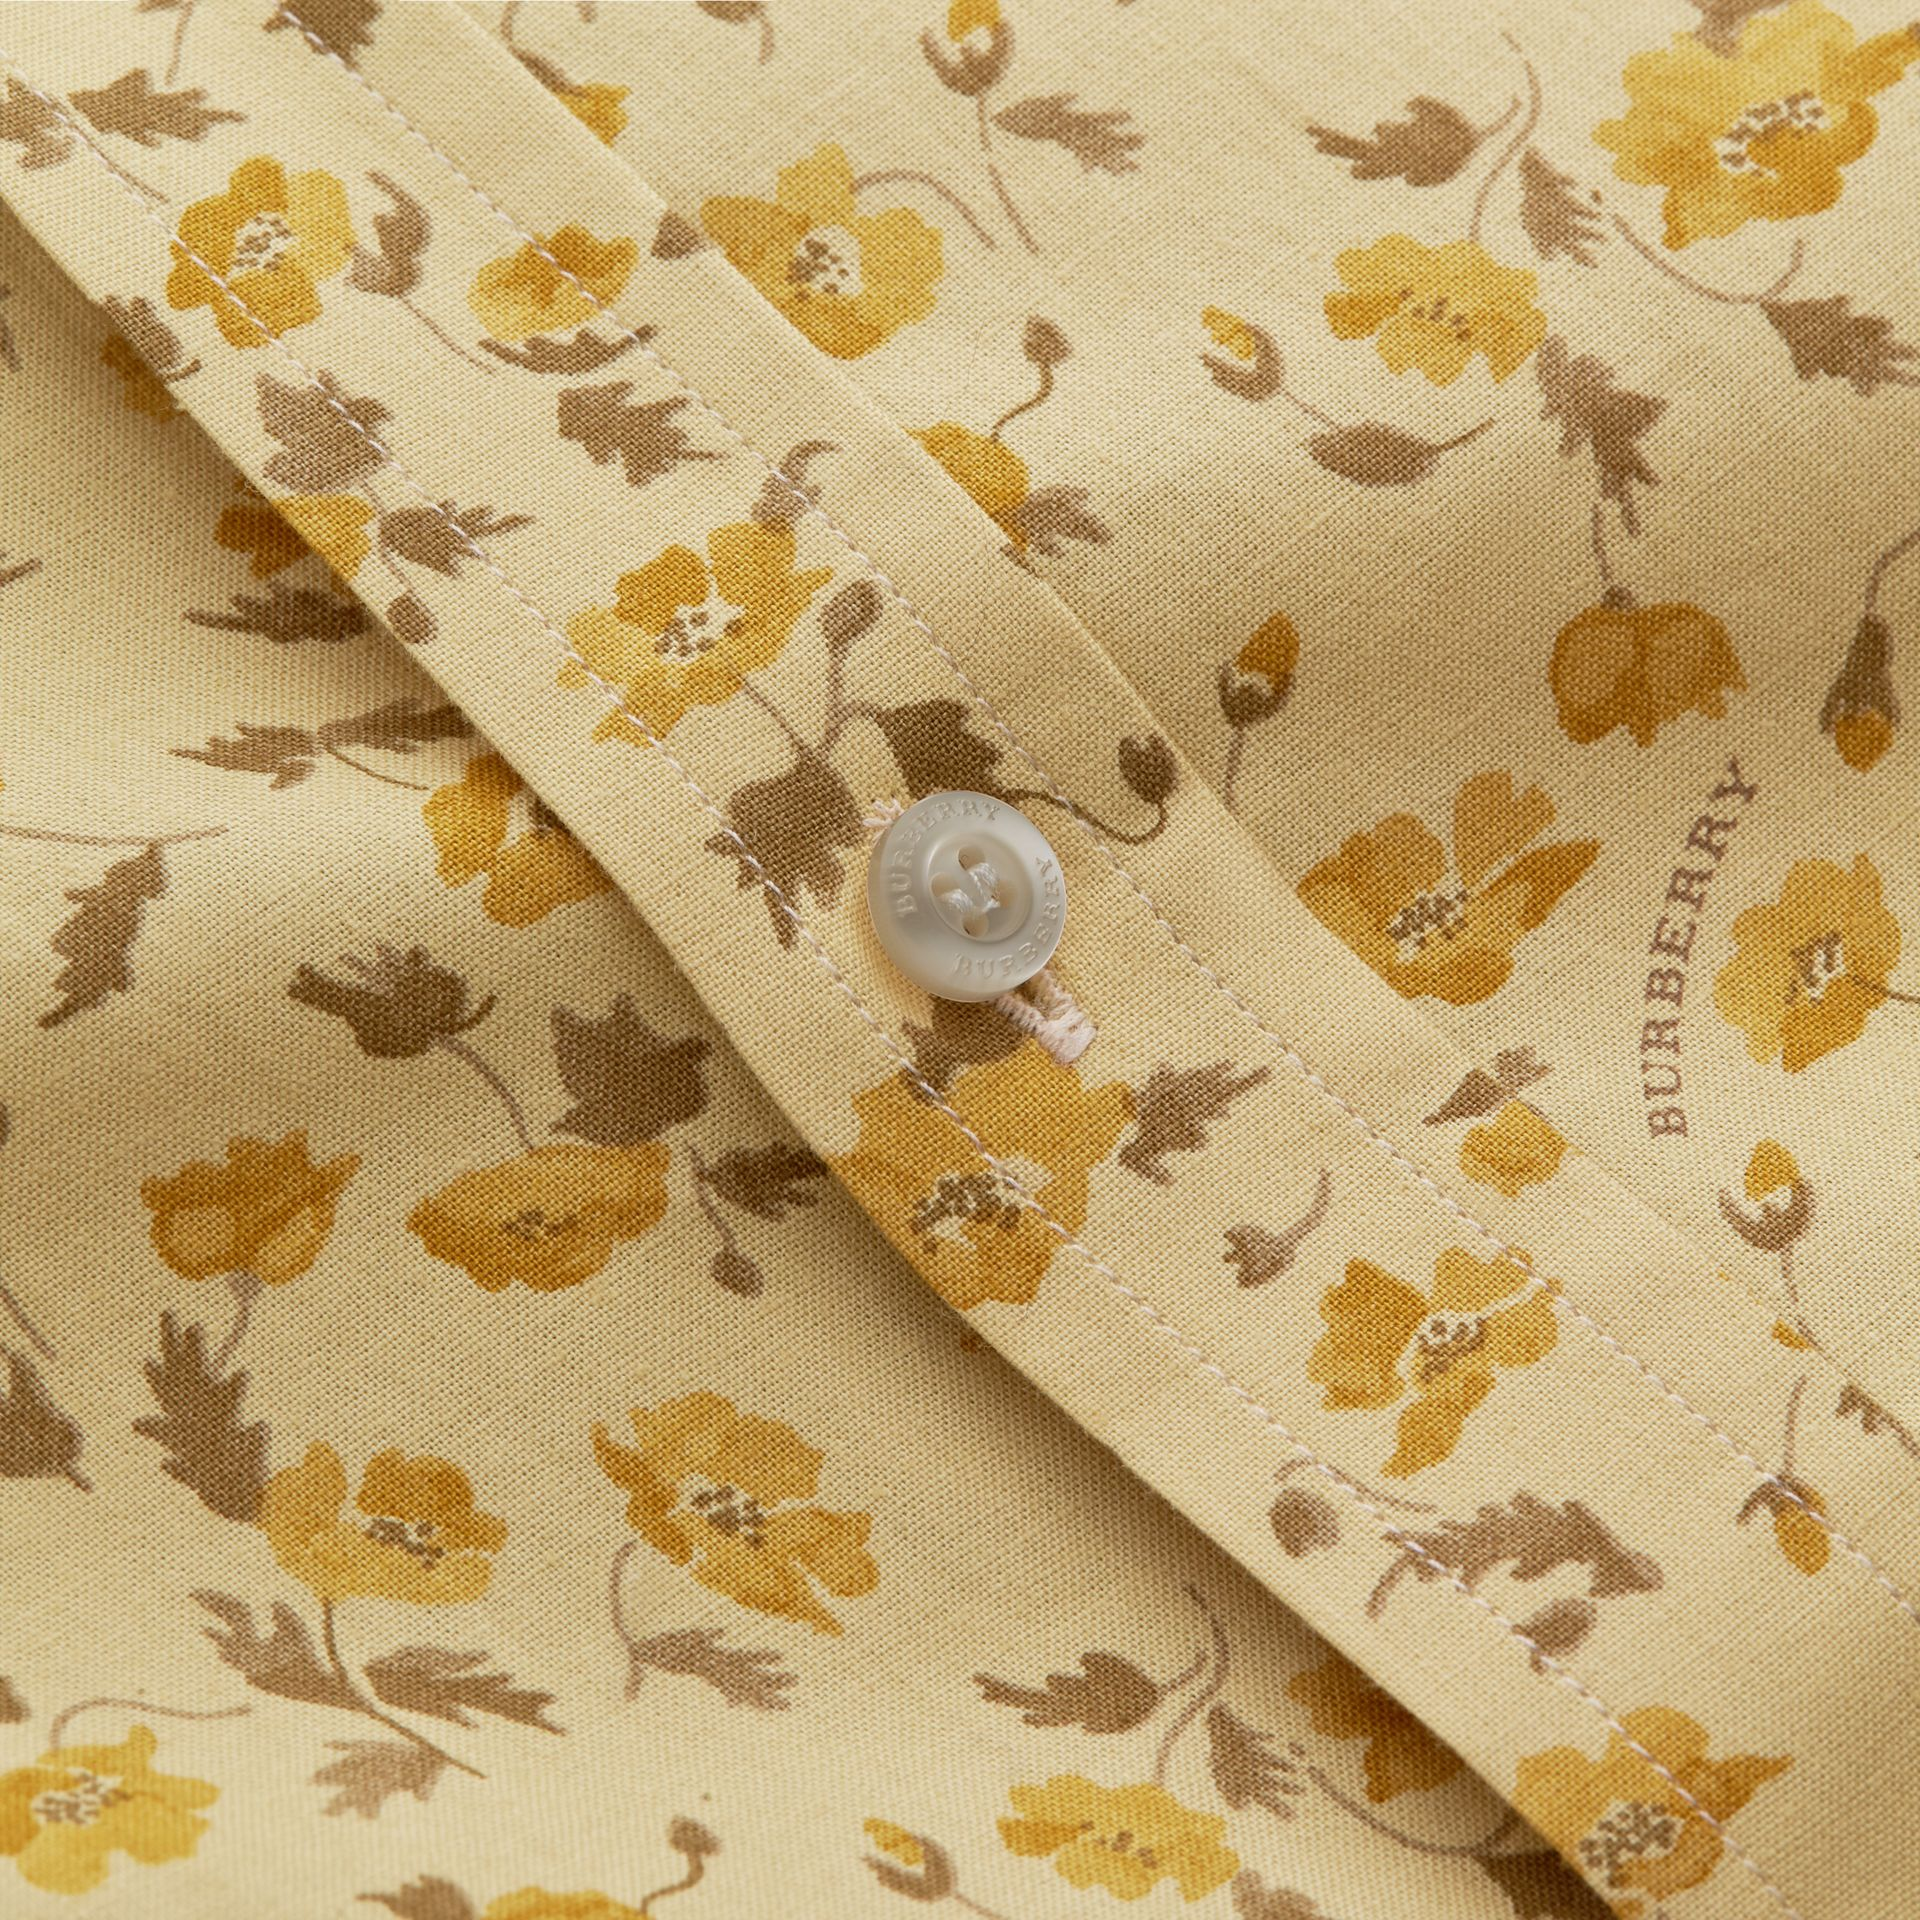 Grandad Collar Floral Print Cotton Poplin Shirt in Chalk Yellow - Men | Burberry - gallery image 2